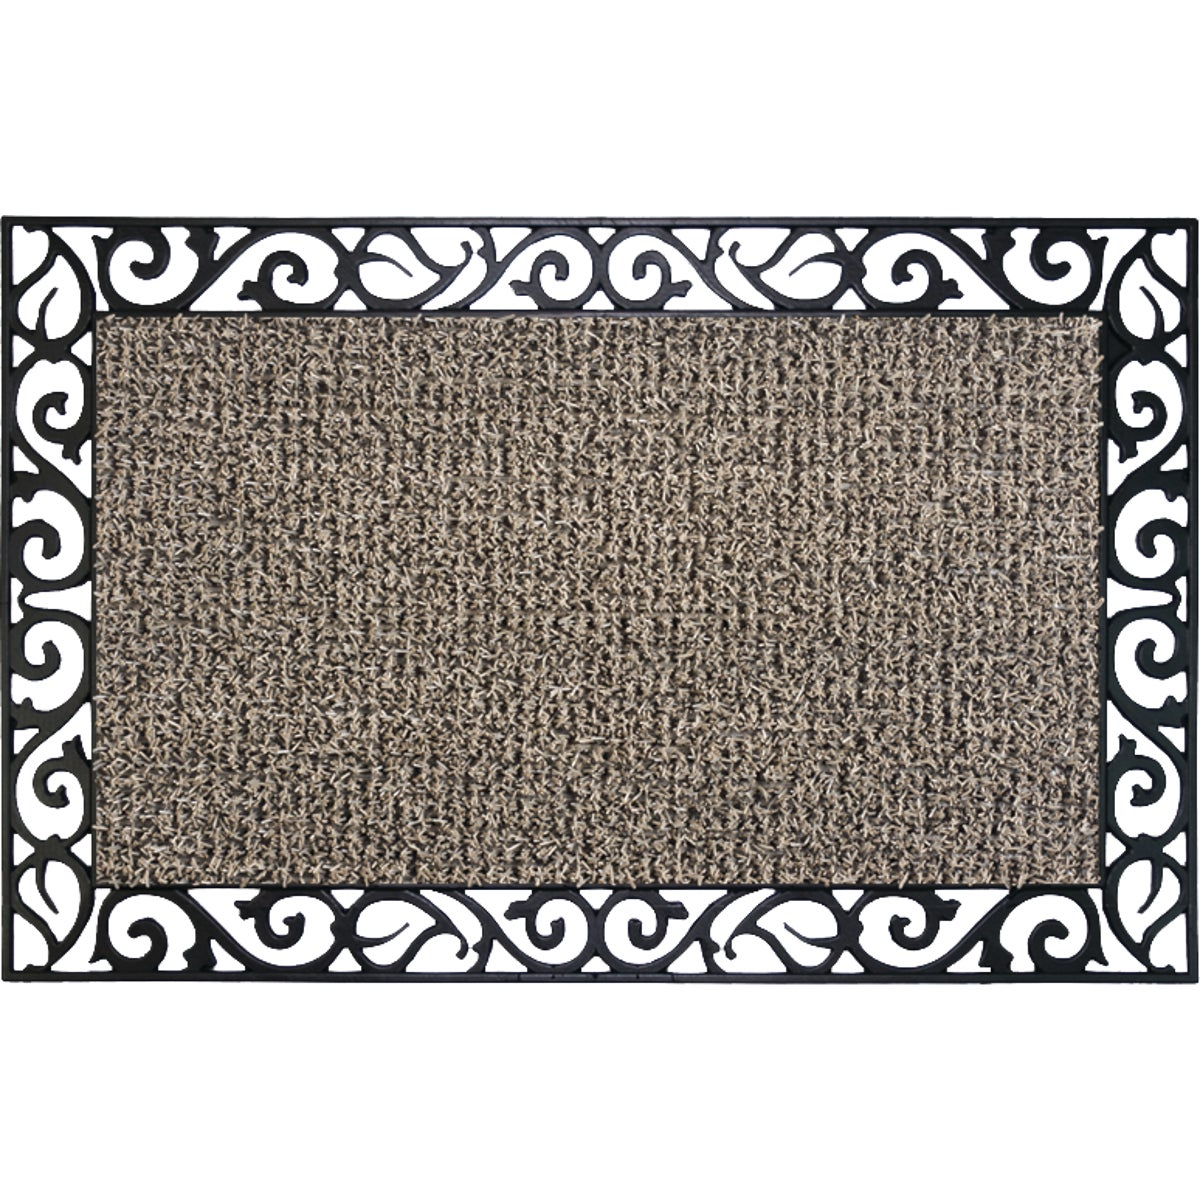 17.5X29.5 TAUPE DOOR MAT - 10267307 by Grassworx